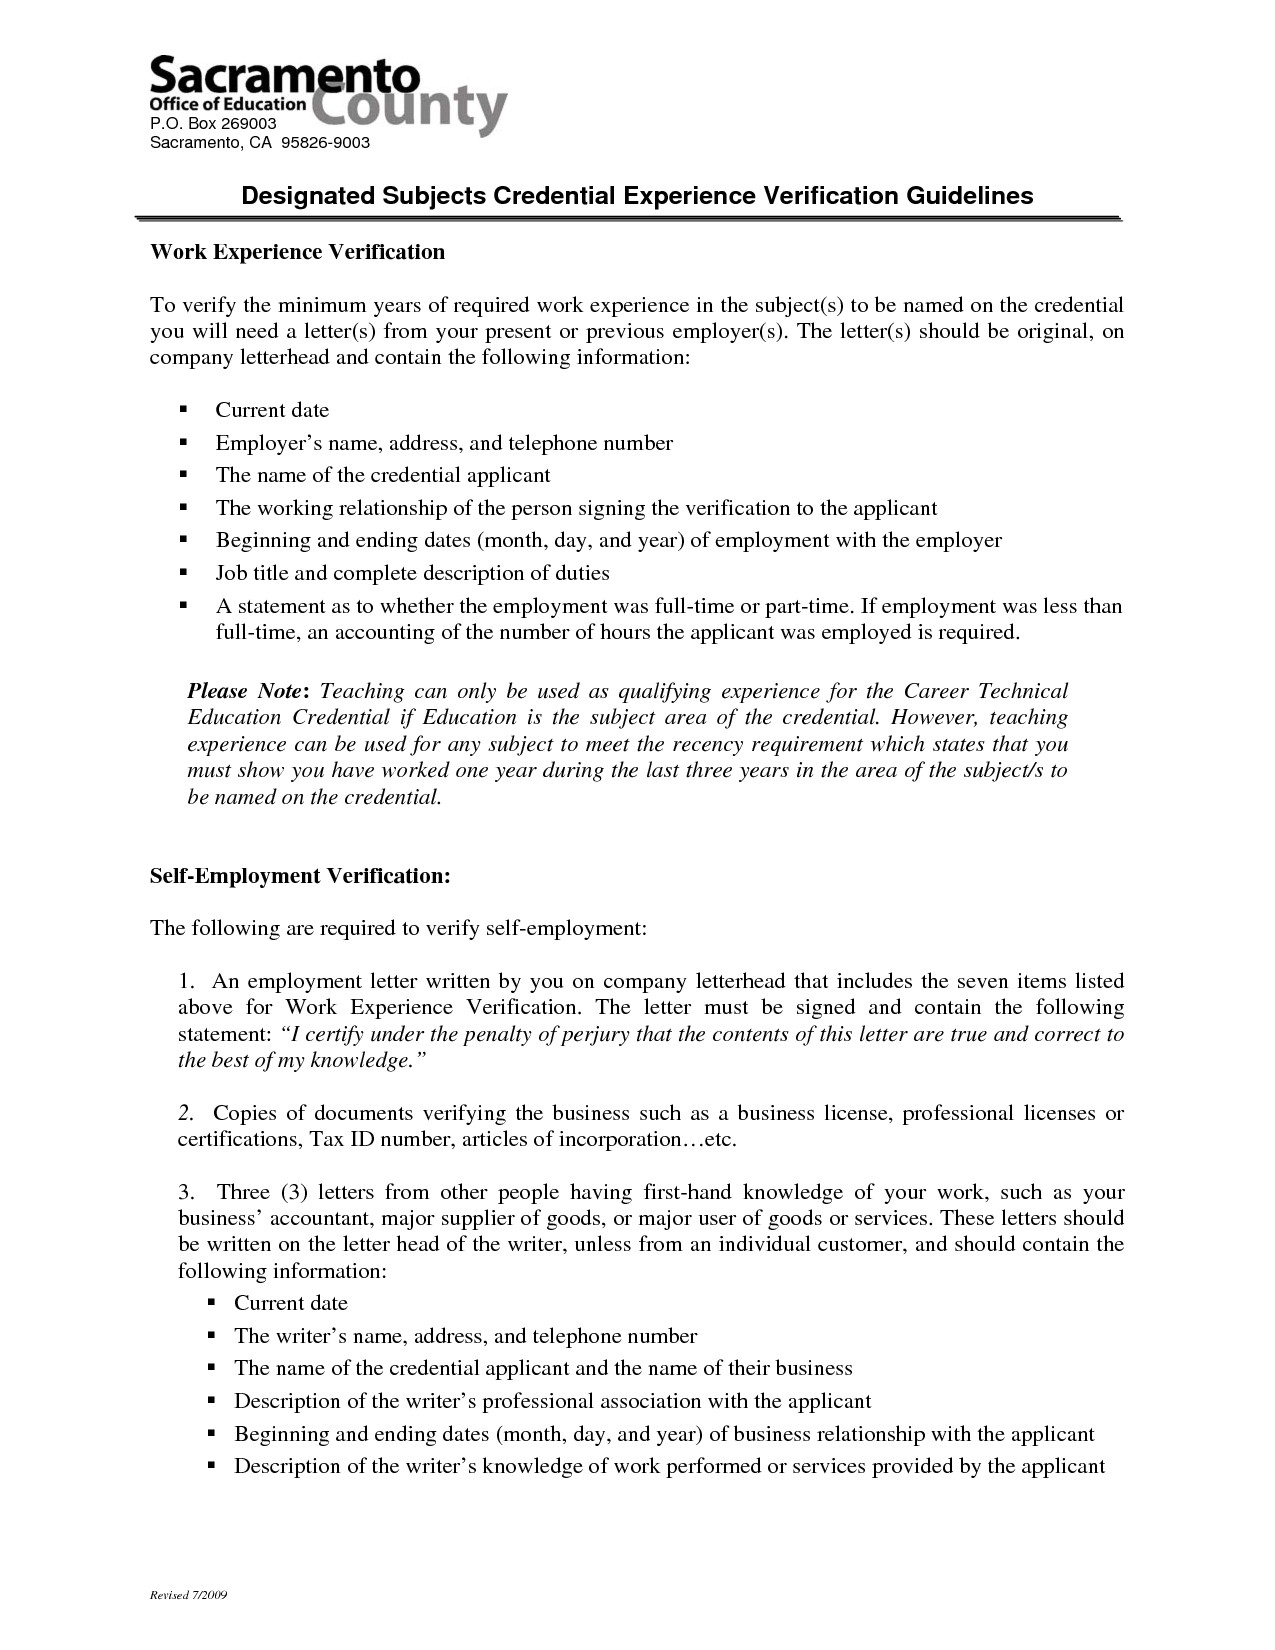 Self Employment Letter Template - How to Write A Self Employment Letter Sample New Sample In E